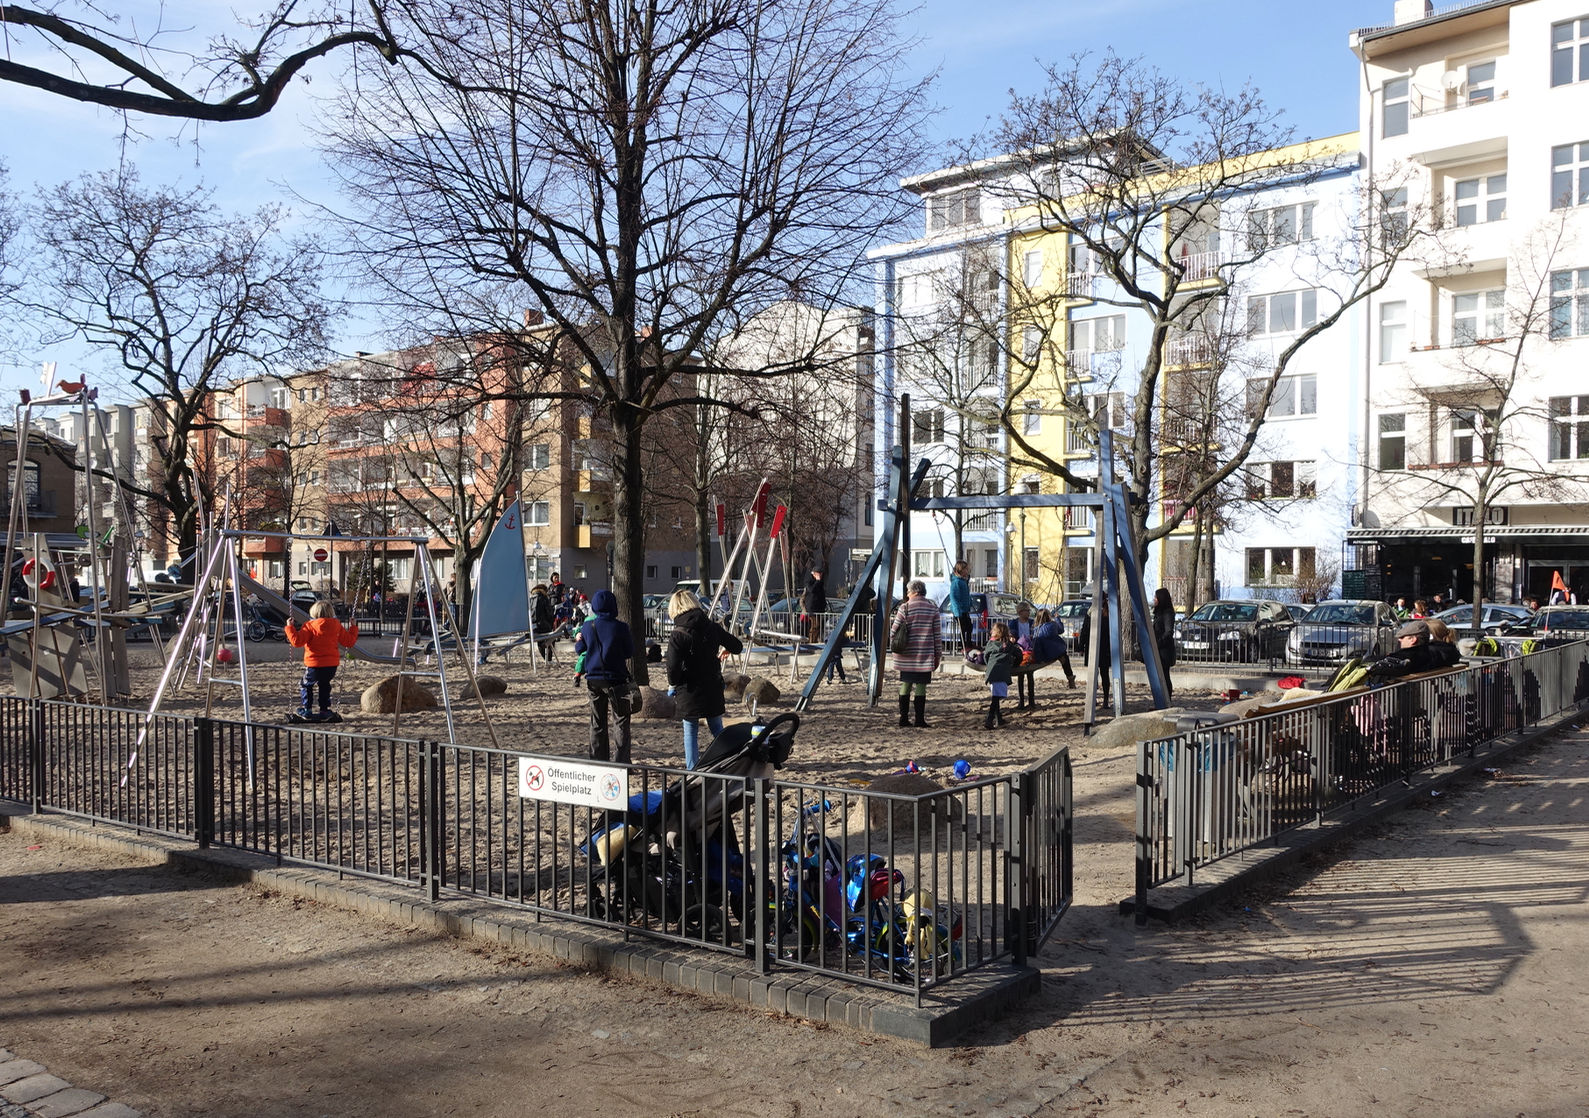 Instead of backyard, kids play in the local playground which is surrounded by mid-rise residential blocks.